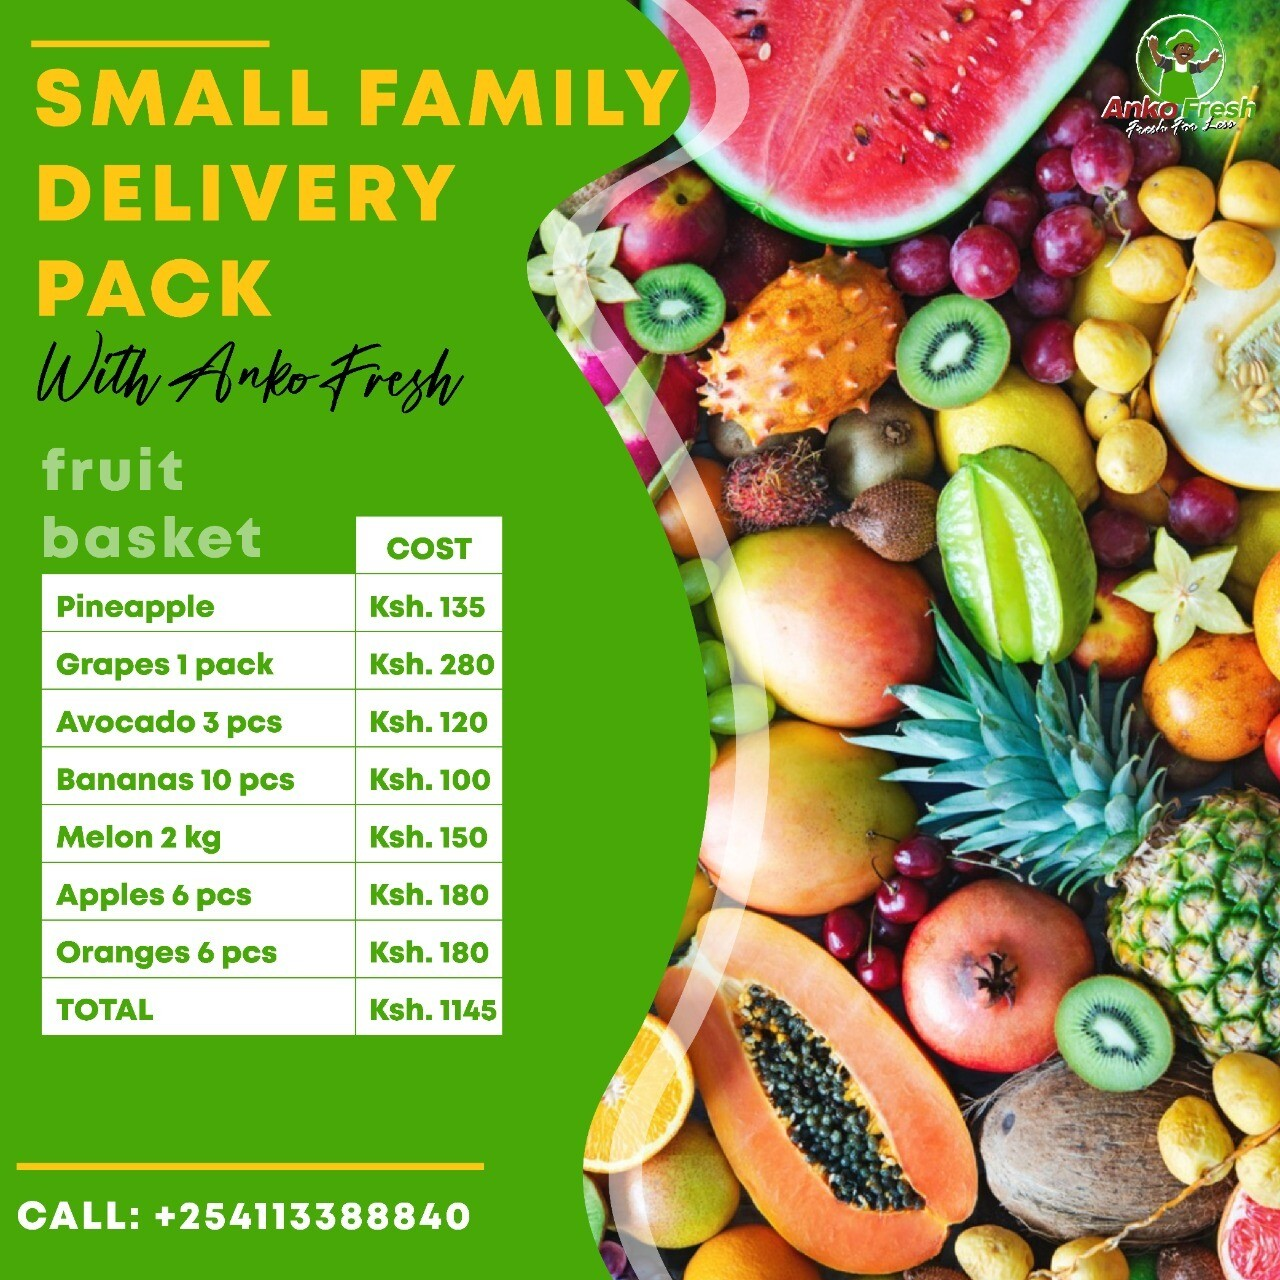 Anko flexible fruit basket click on link to  here to build your own assortment